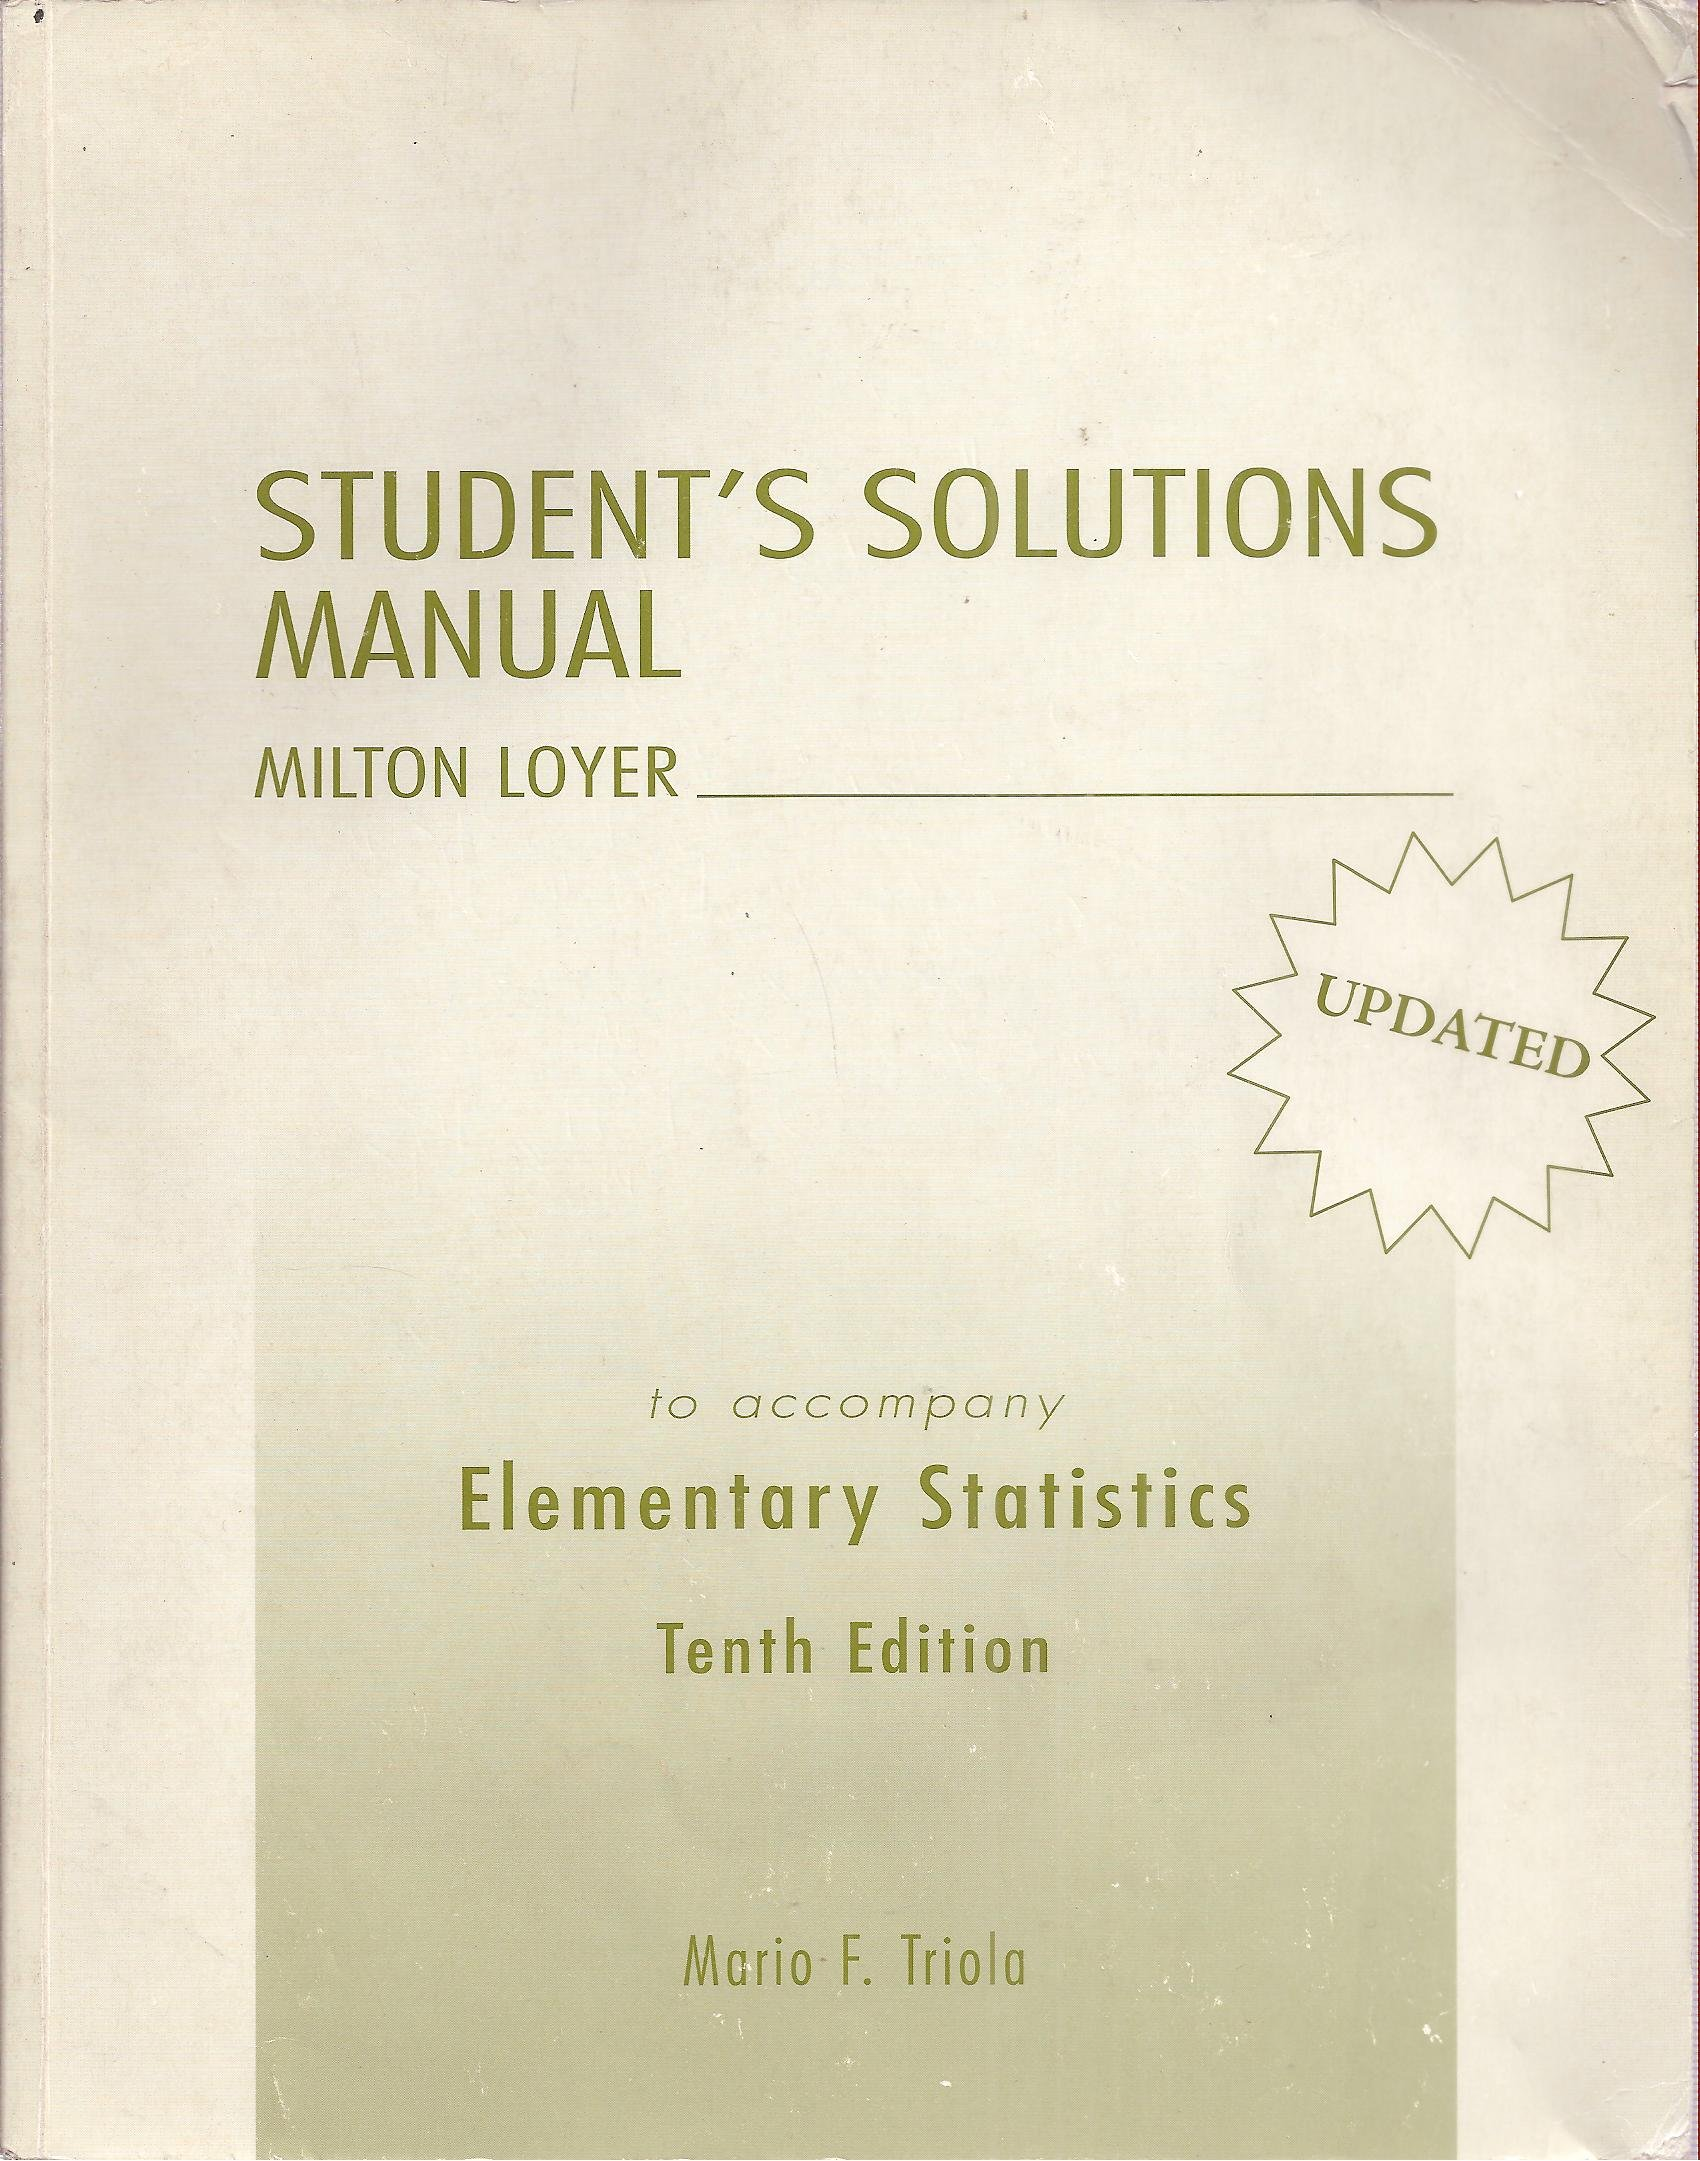 Student's Solutions Manual to Accompany Elementary Statistics Tenth  Edition: Milton Loyer, Mario F. Triola: 9780321470409: Amazon.com: Books